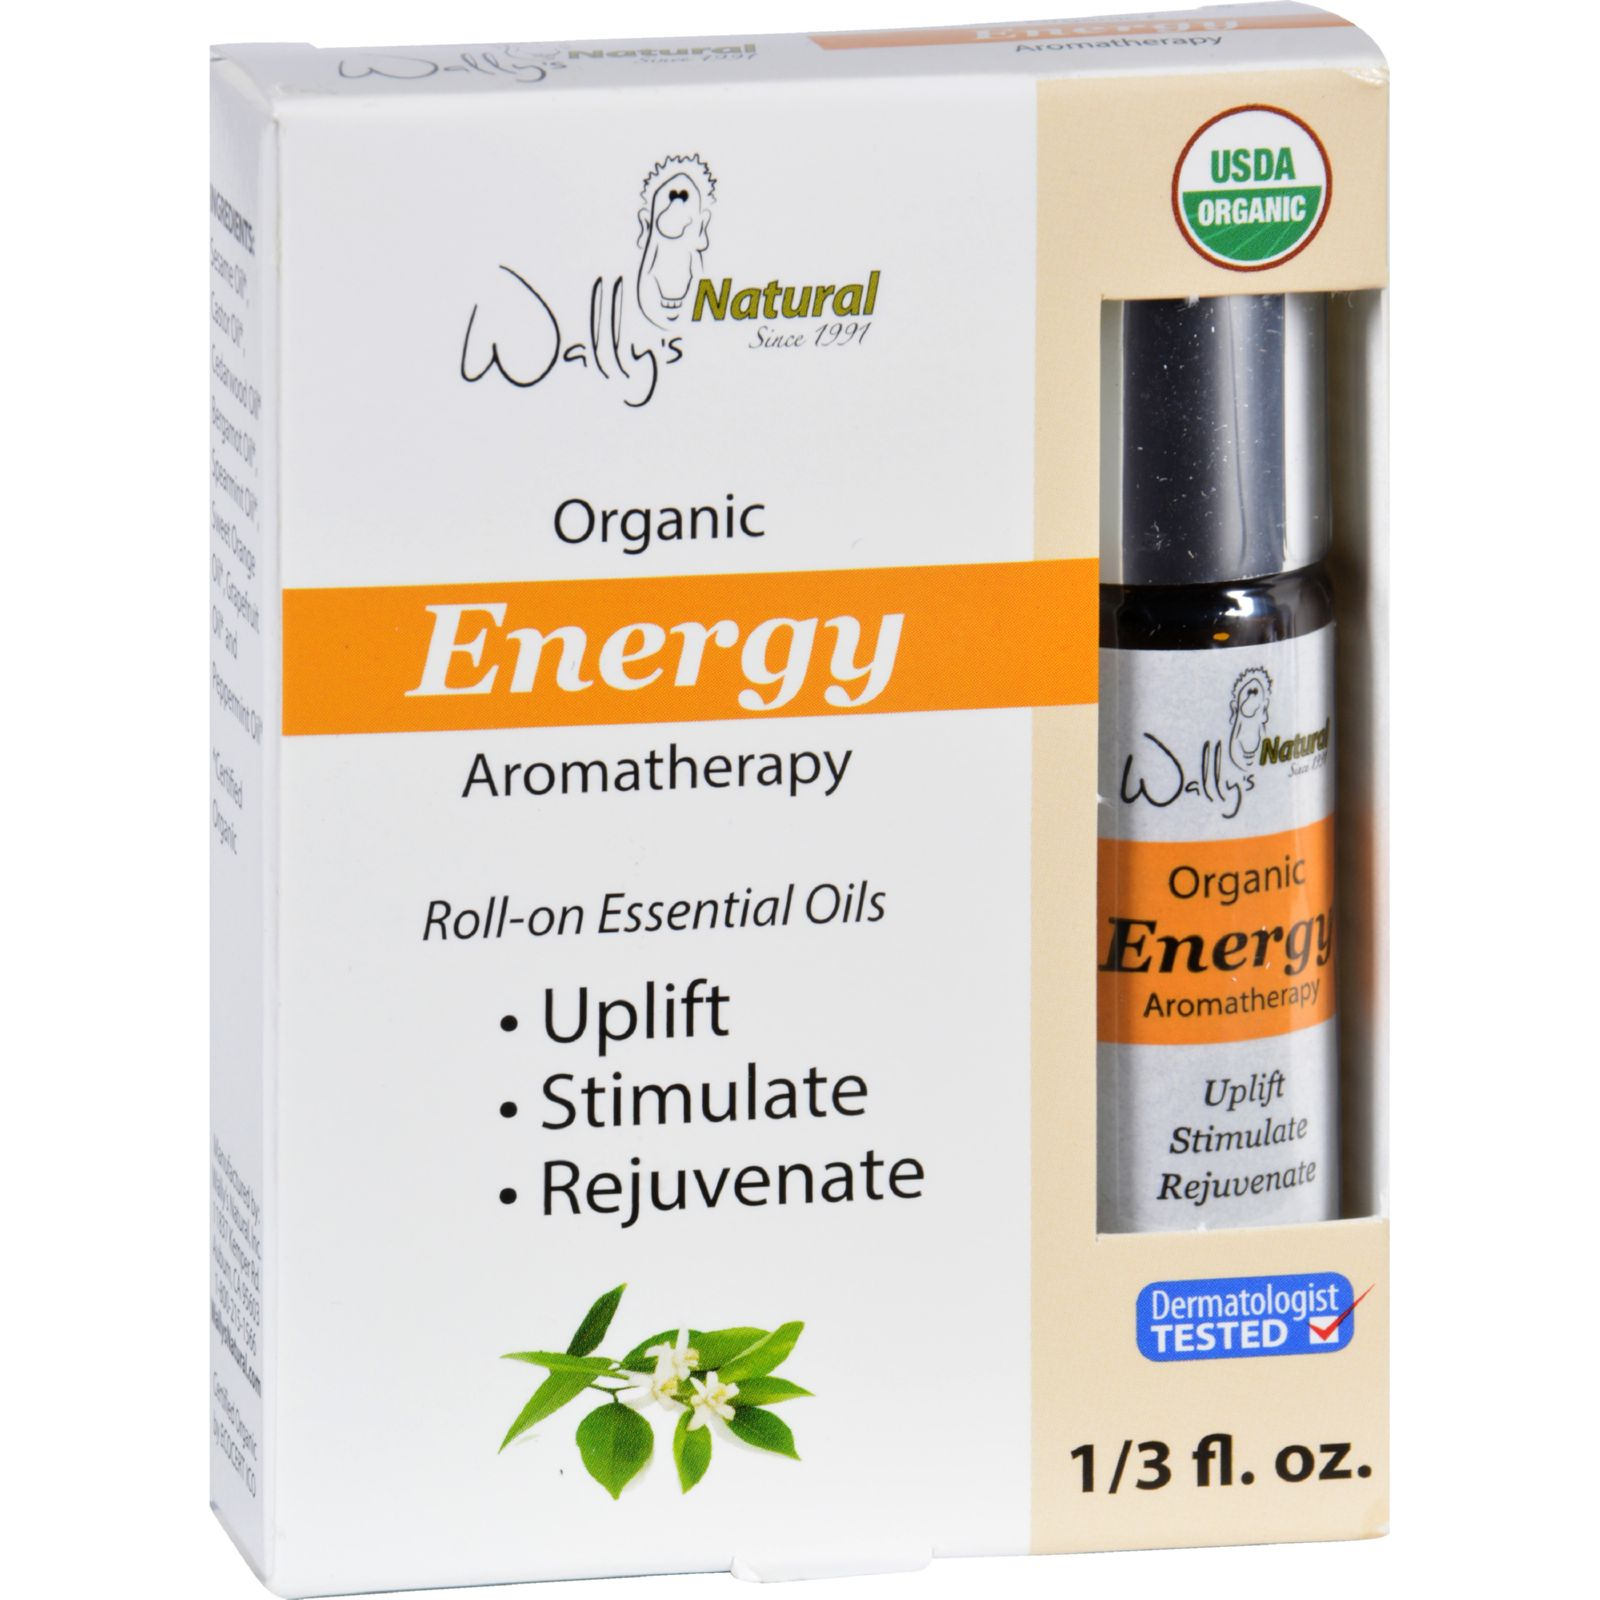 Wallys Natural Products Aromatherapy Blend  Organic  Roll On  Essential Oils  Energy  .33 oz